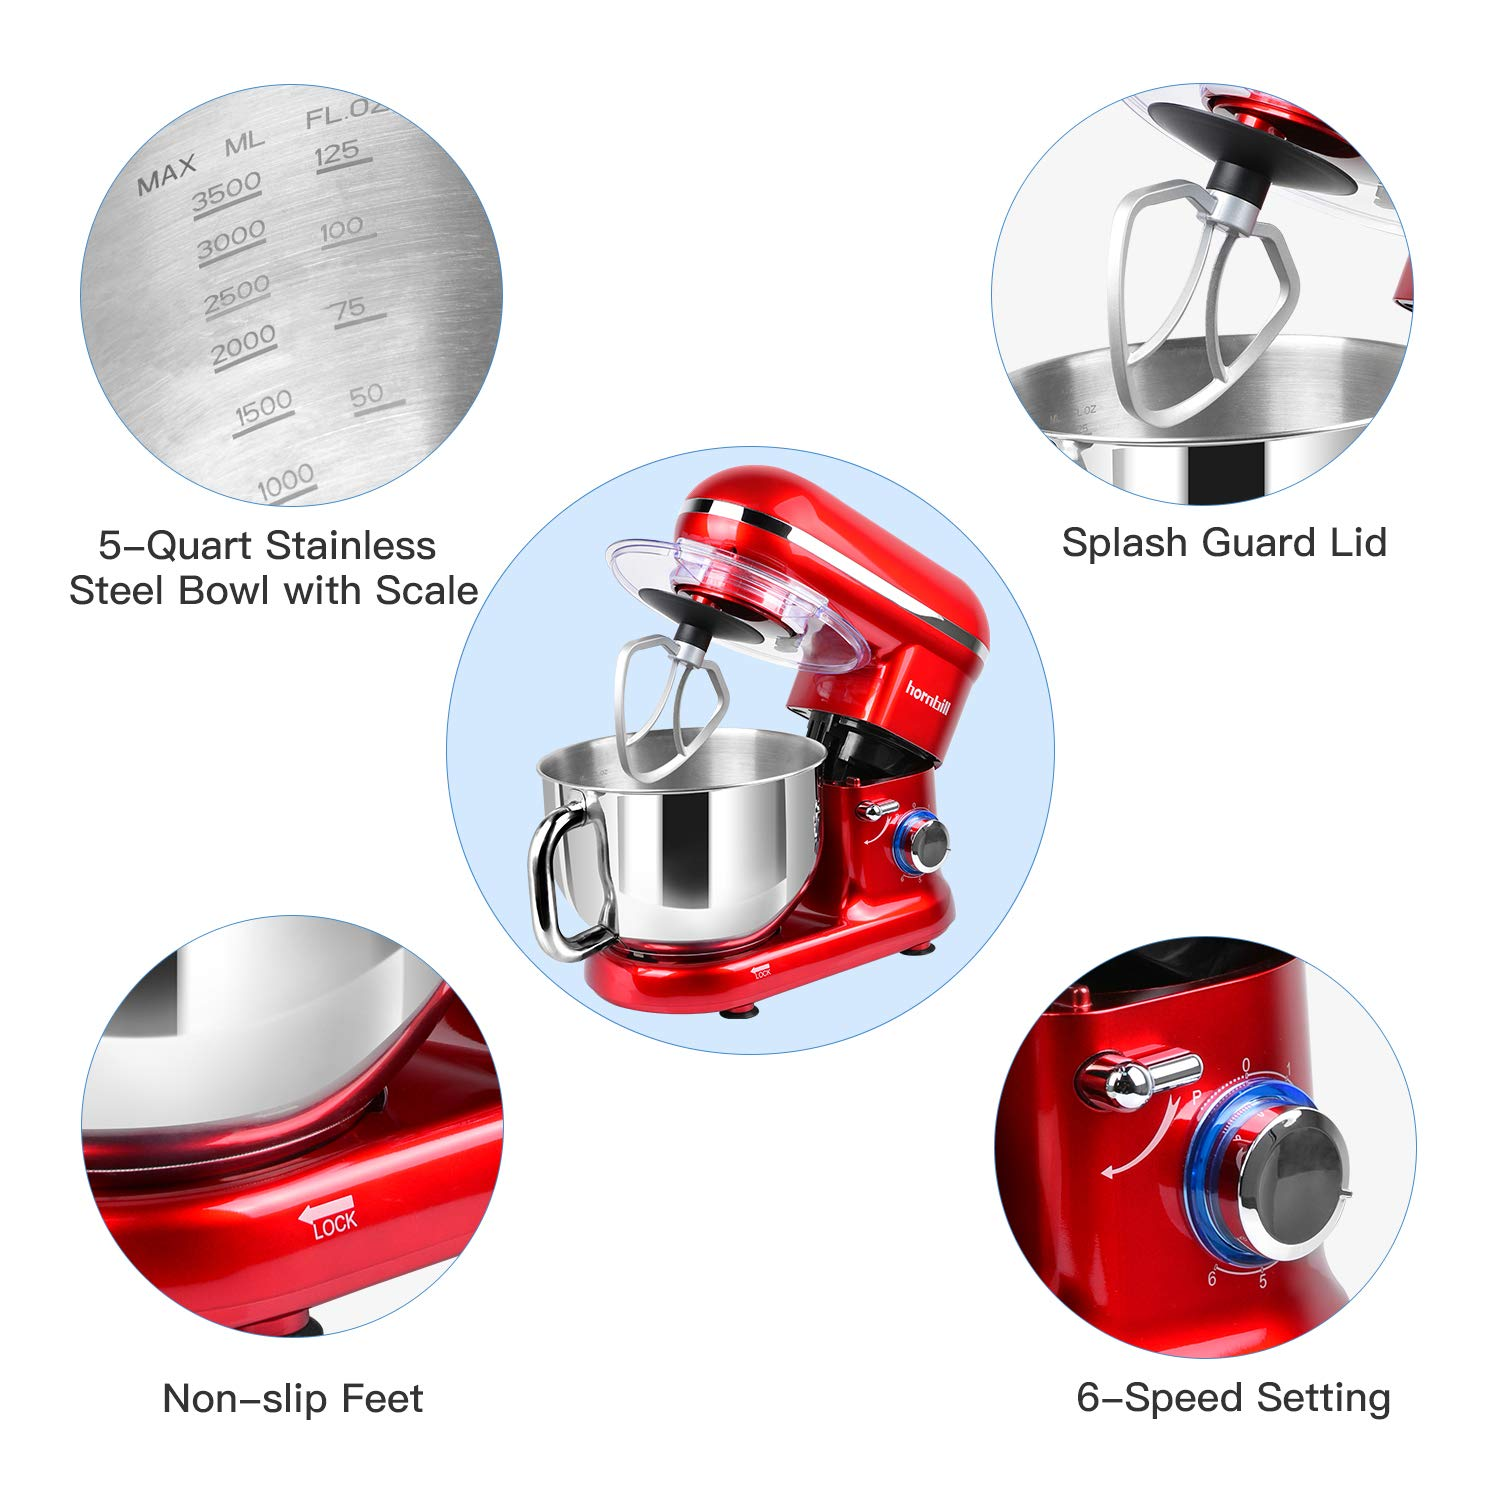 Hornbill Tilt-head Stand Mixer, Electric Mixer 600W 6-Speed 5-Quart Stainless Steel Bowl Professional Kitchen Mixer With Dough Hook, Whisk, Beater(Red) by Hornbill (Image #4)